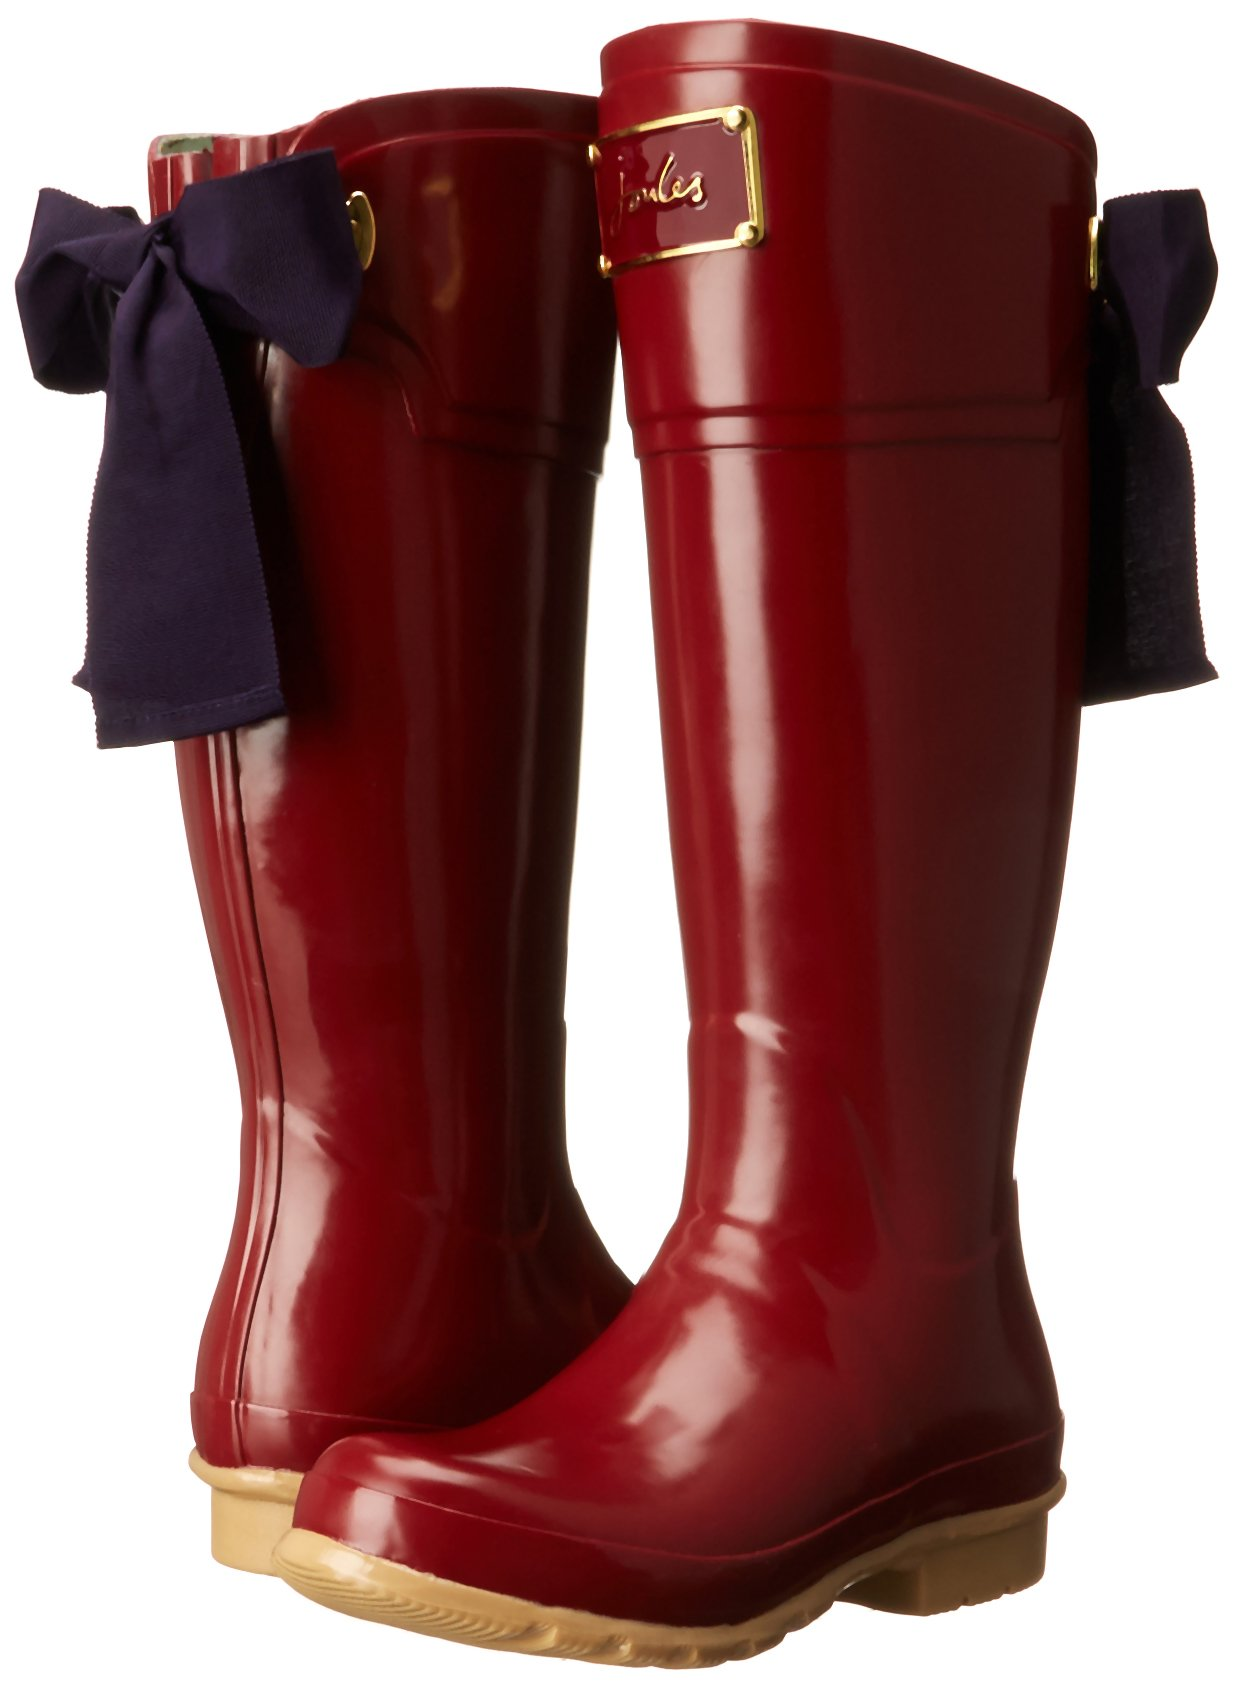 LOVE these Joules rainboots with bow detailing